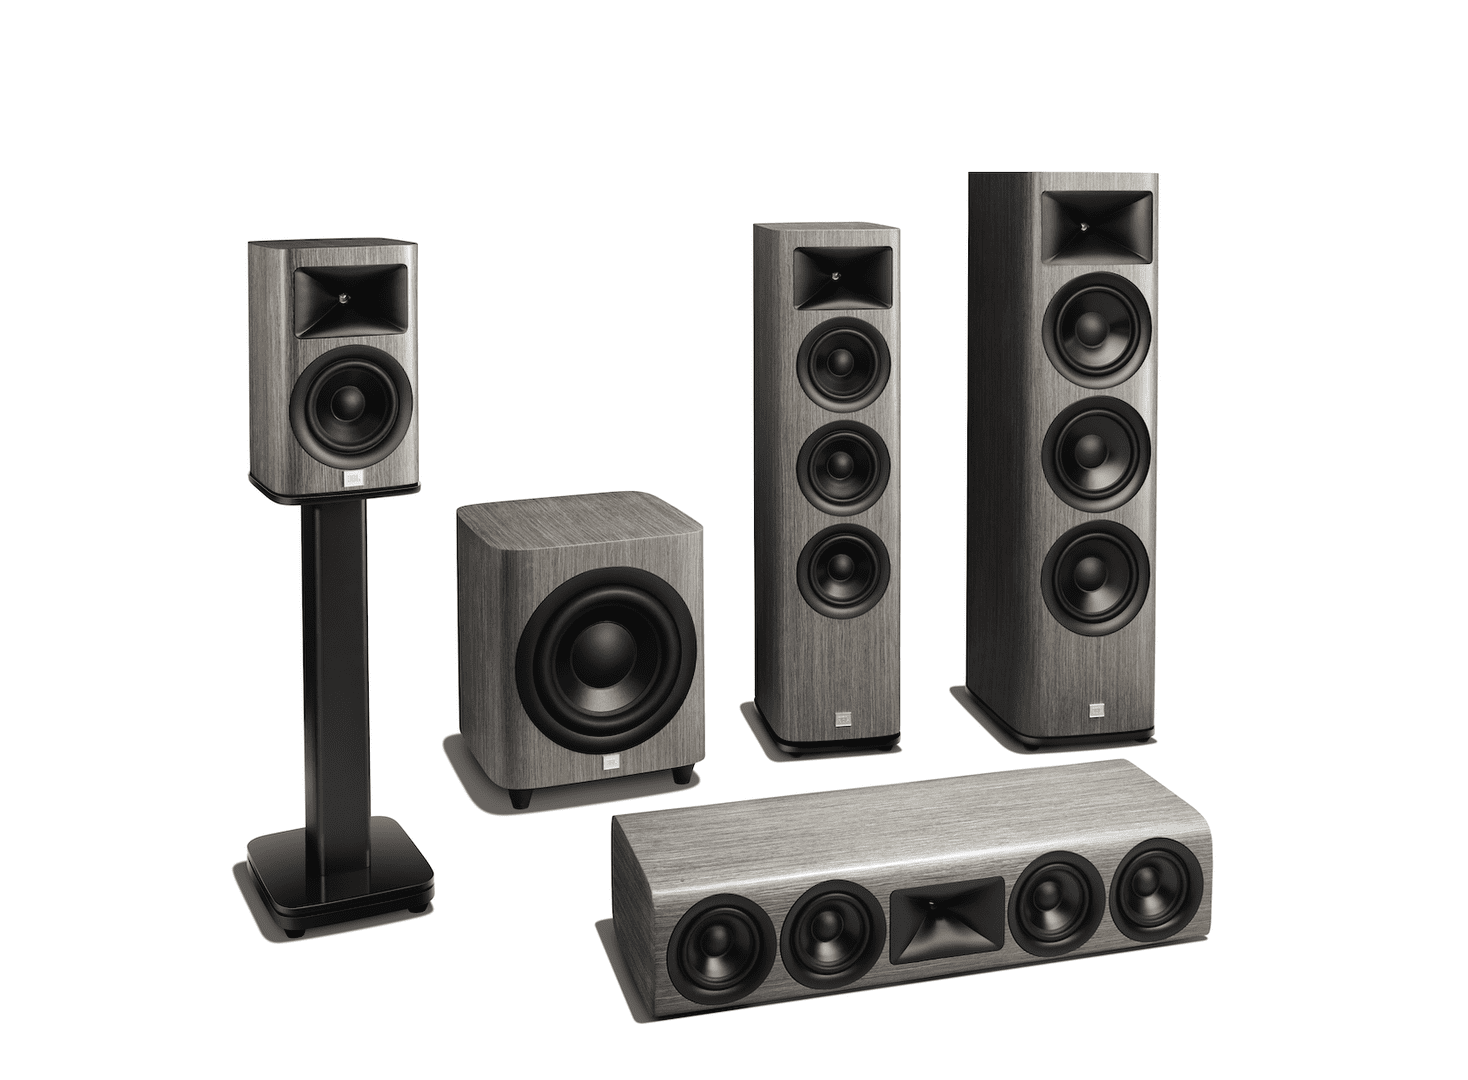 JBL's New HDI Series Delivers Exceptional Sound with Sophisticated Design